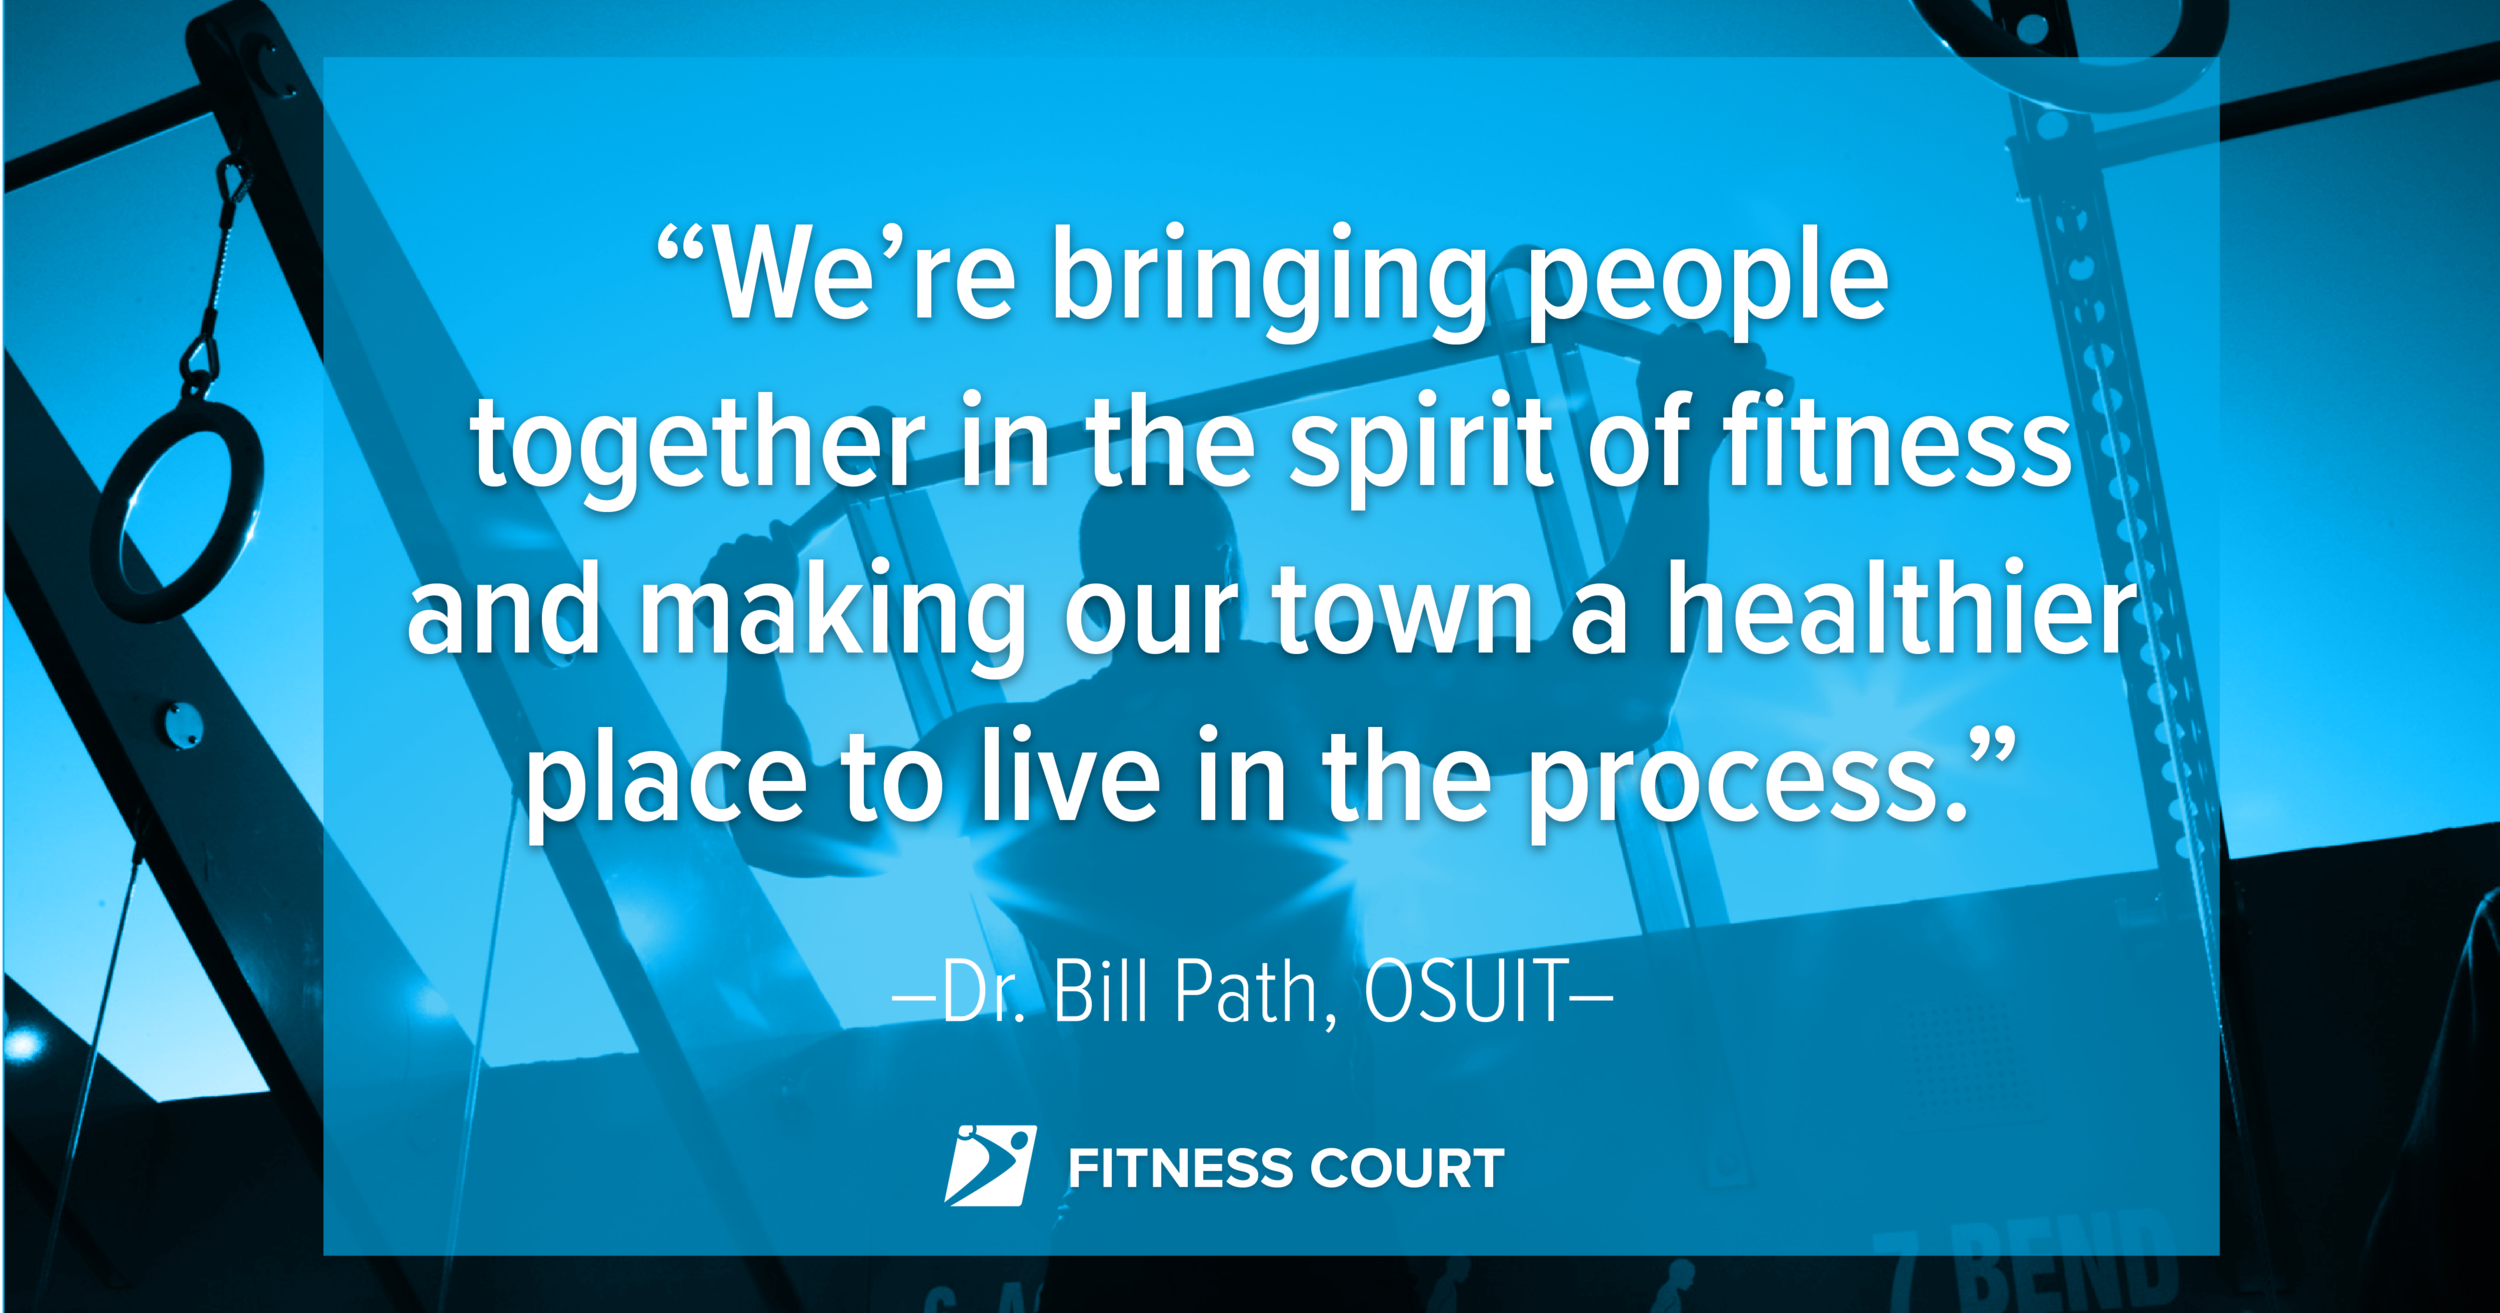 OSUIT-quote-wide-1200x630.png